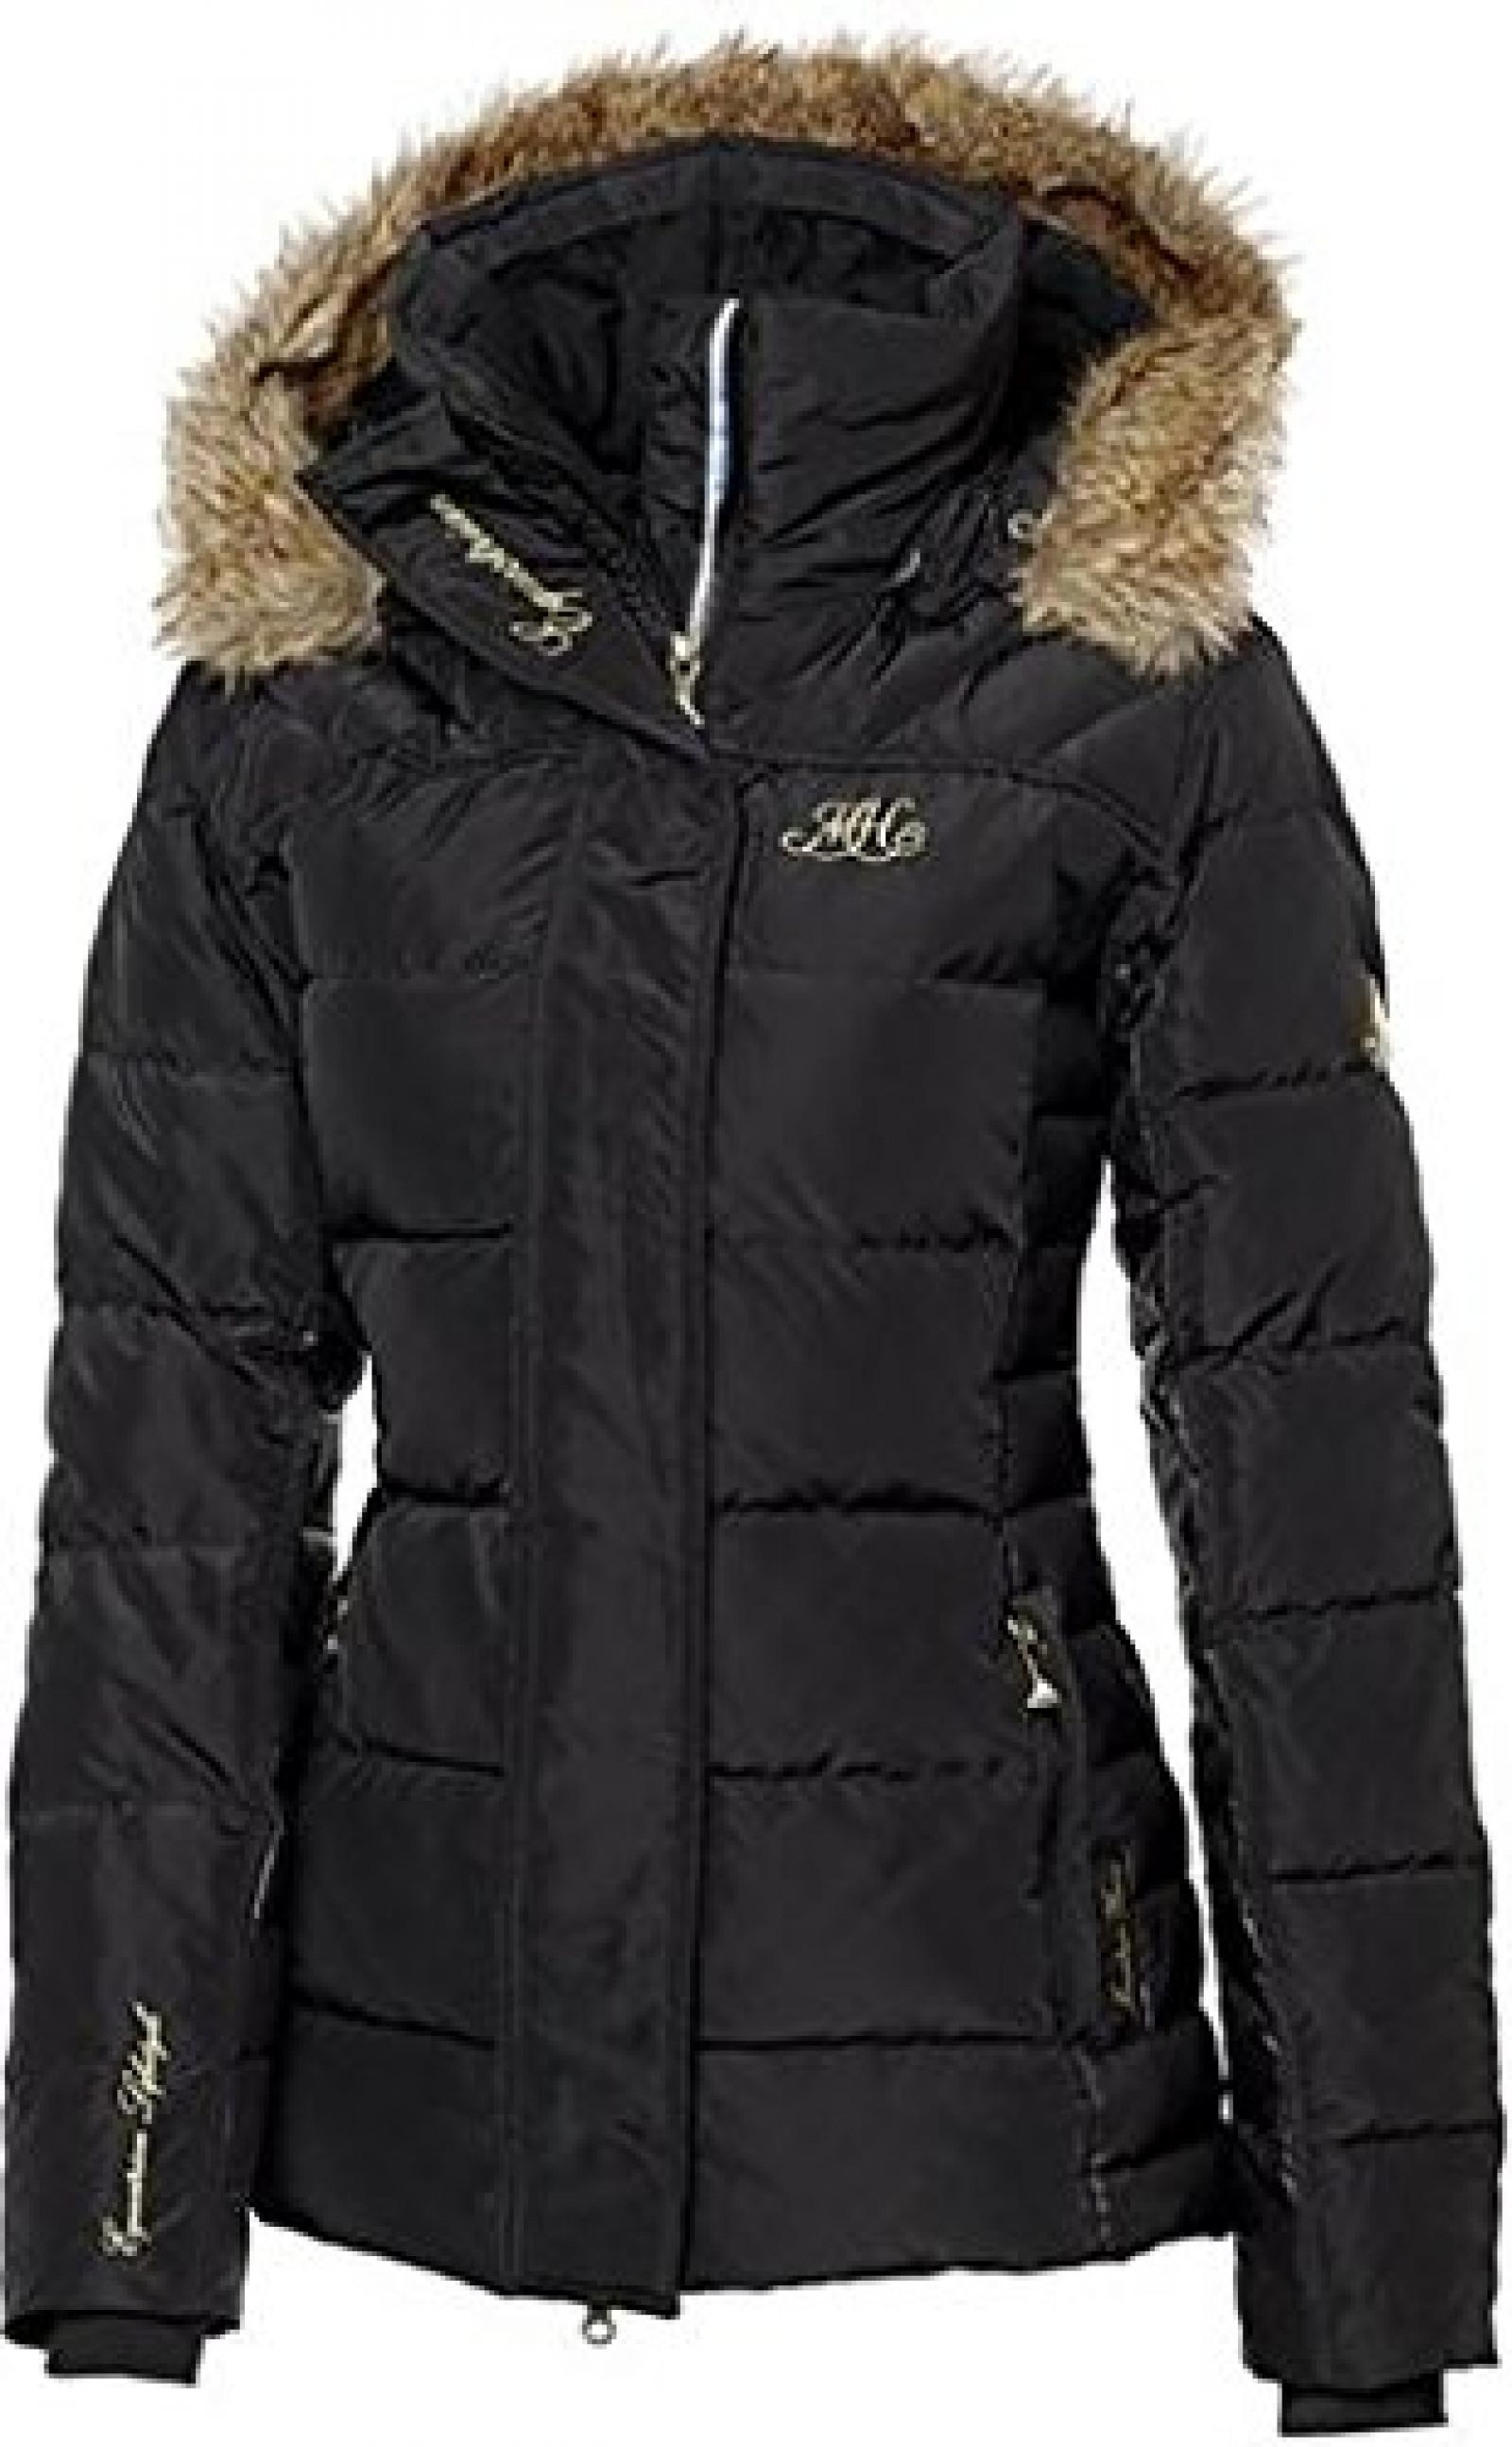 MOUNTAIN HORSE Damen Winter Jacke BELVEDERE JACKET, schwarz, XS